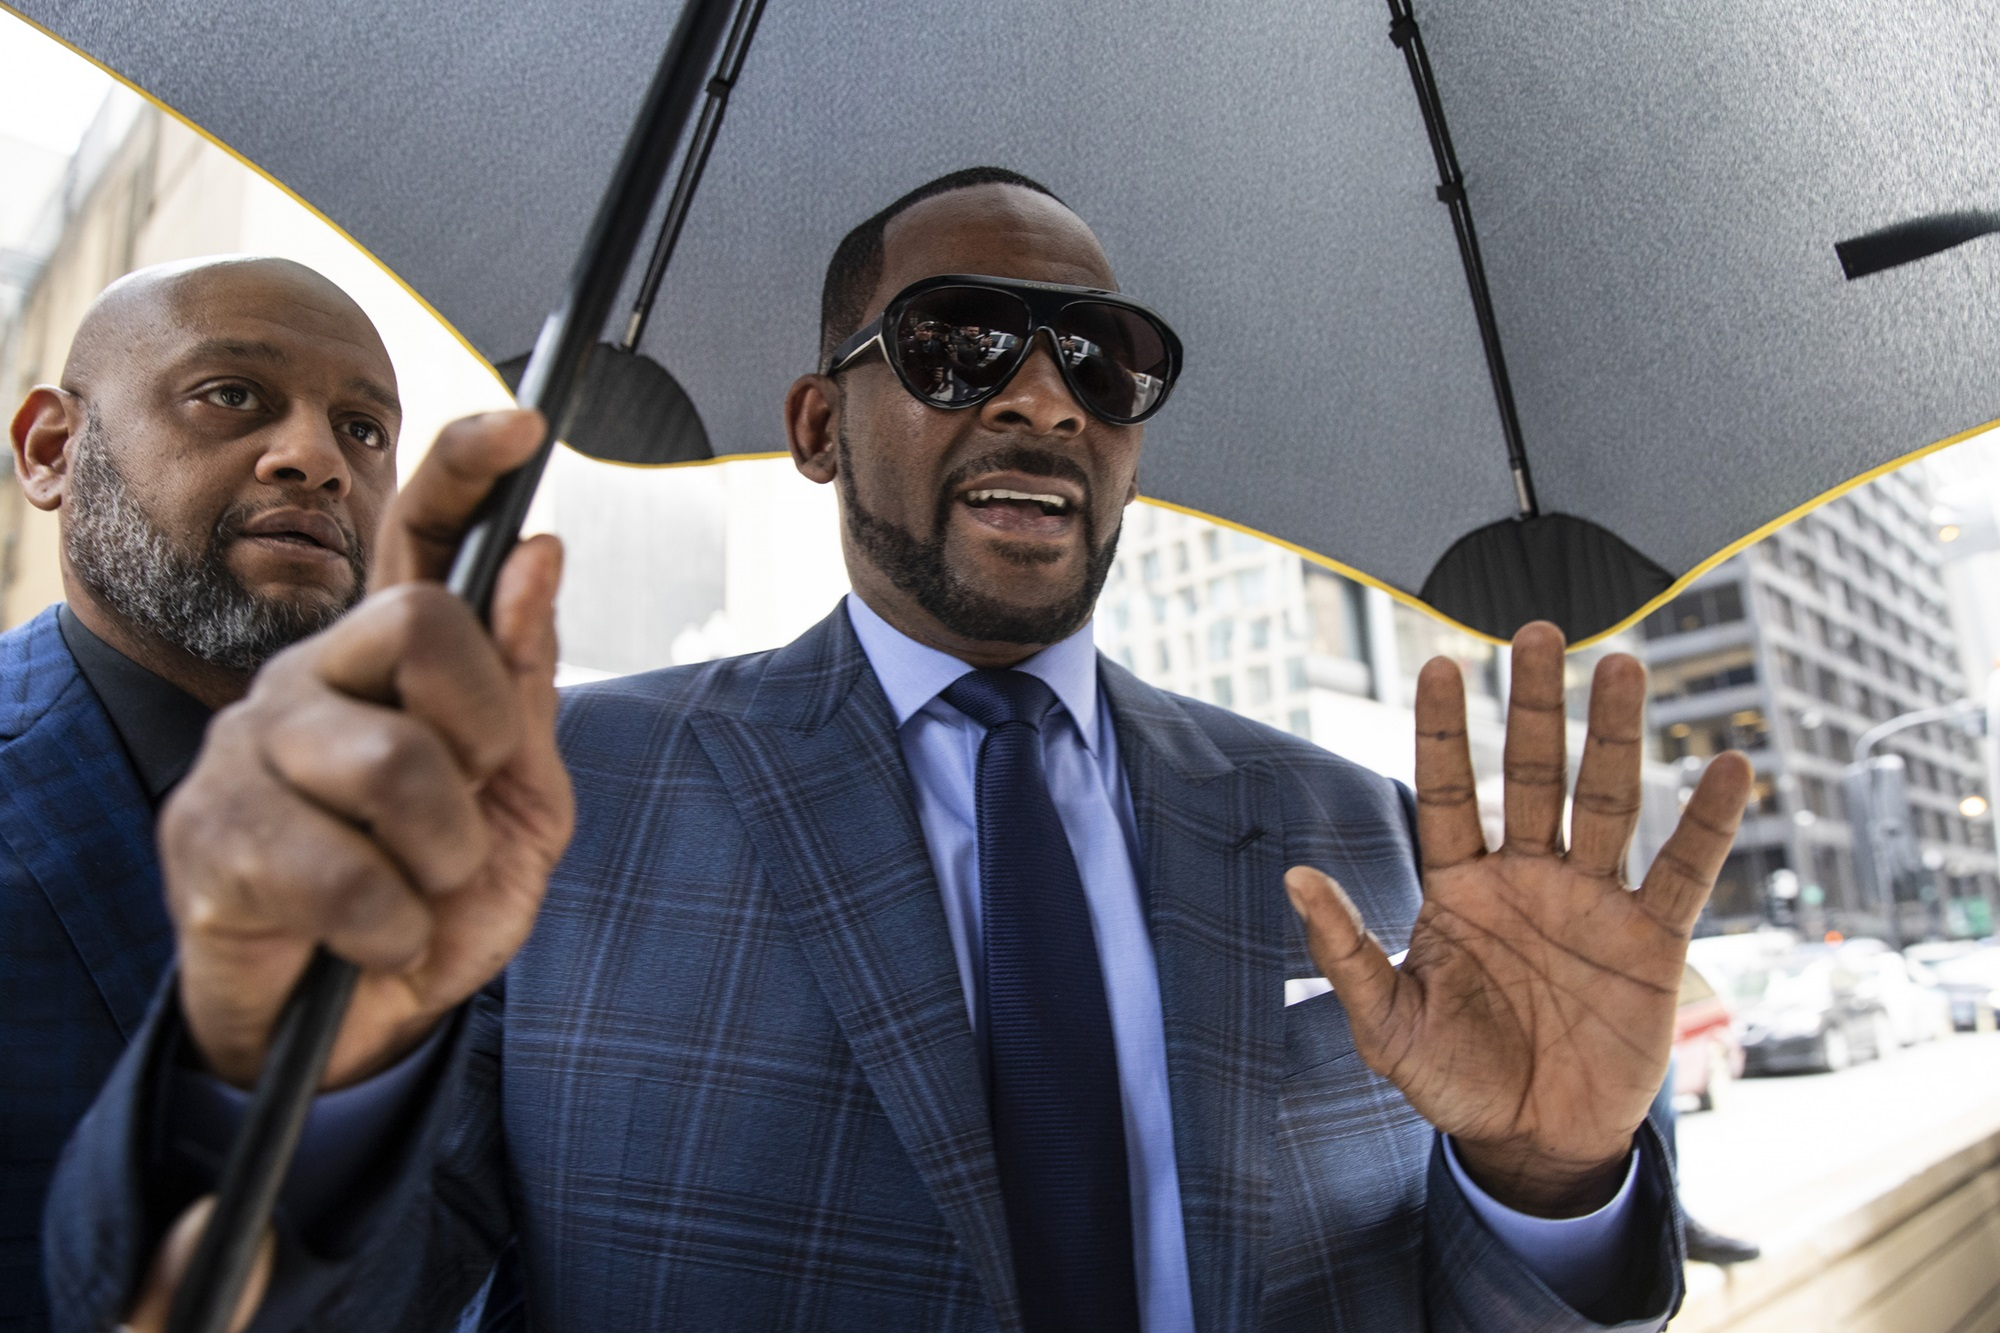 R. Kelly Misses Court Date While In Jail